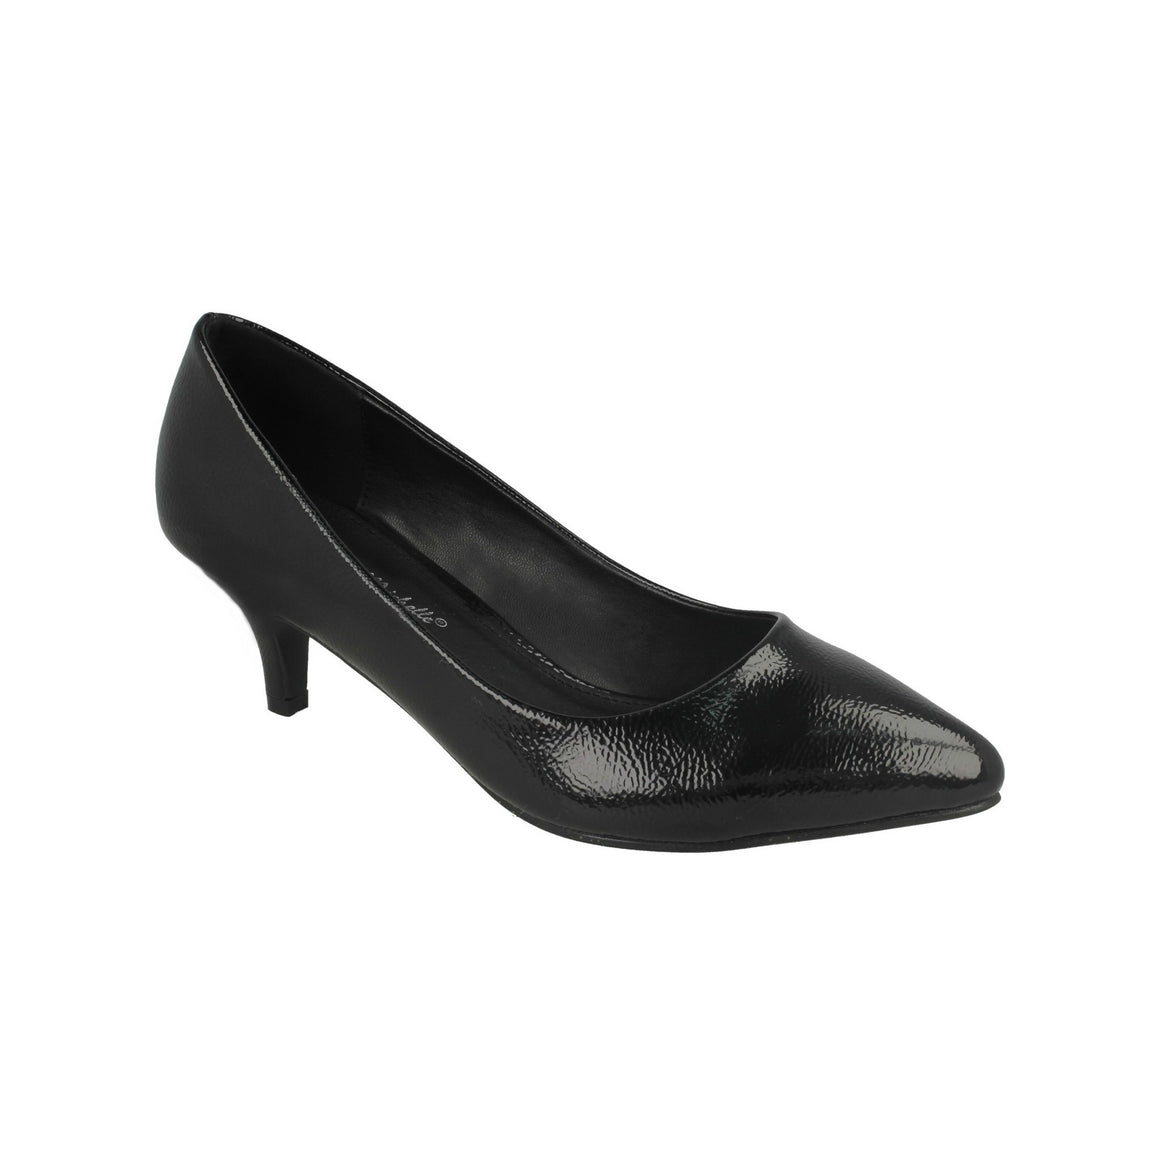 Black Patent Kitten Heel Court Shoe